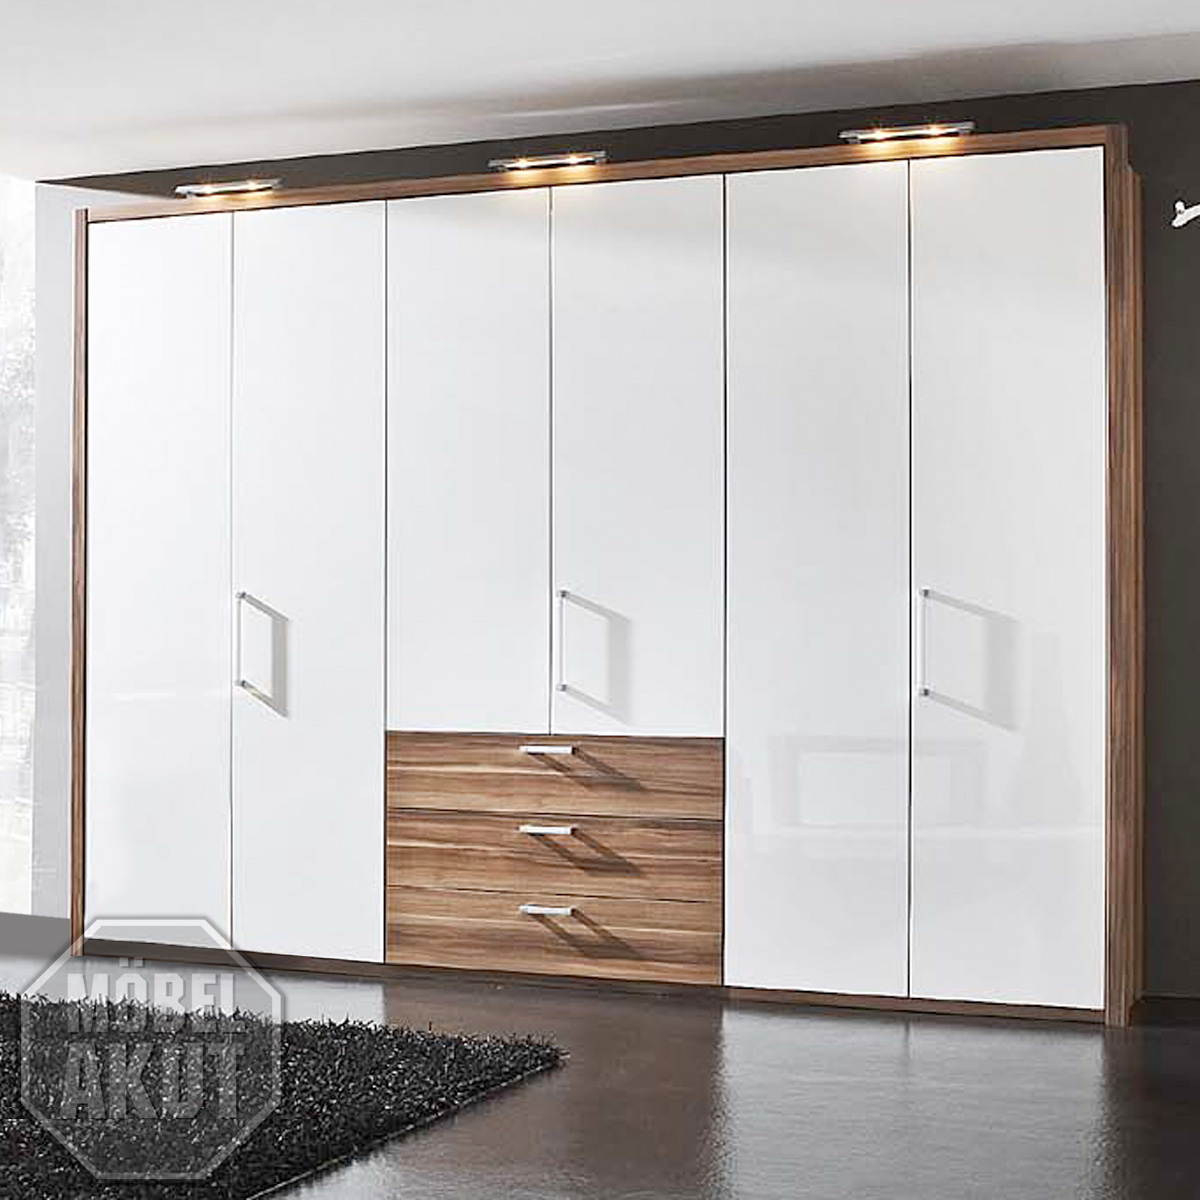 kleiderschrank solo schlafzimmerschrank schrank wei hochglanz nussbaum 310 cm ebay. Black Bedroom Furniture Sets. Home Design Ideas